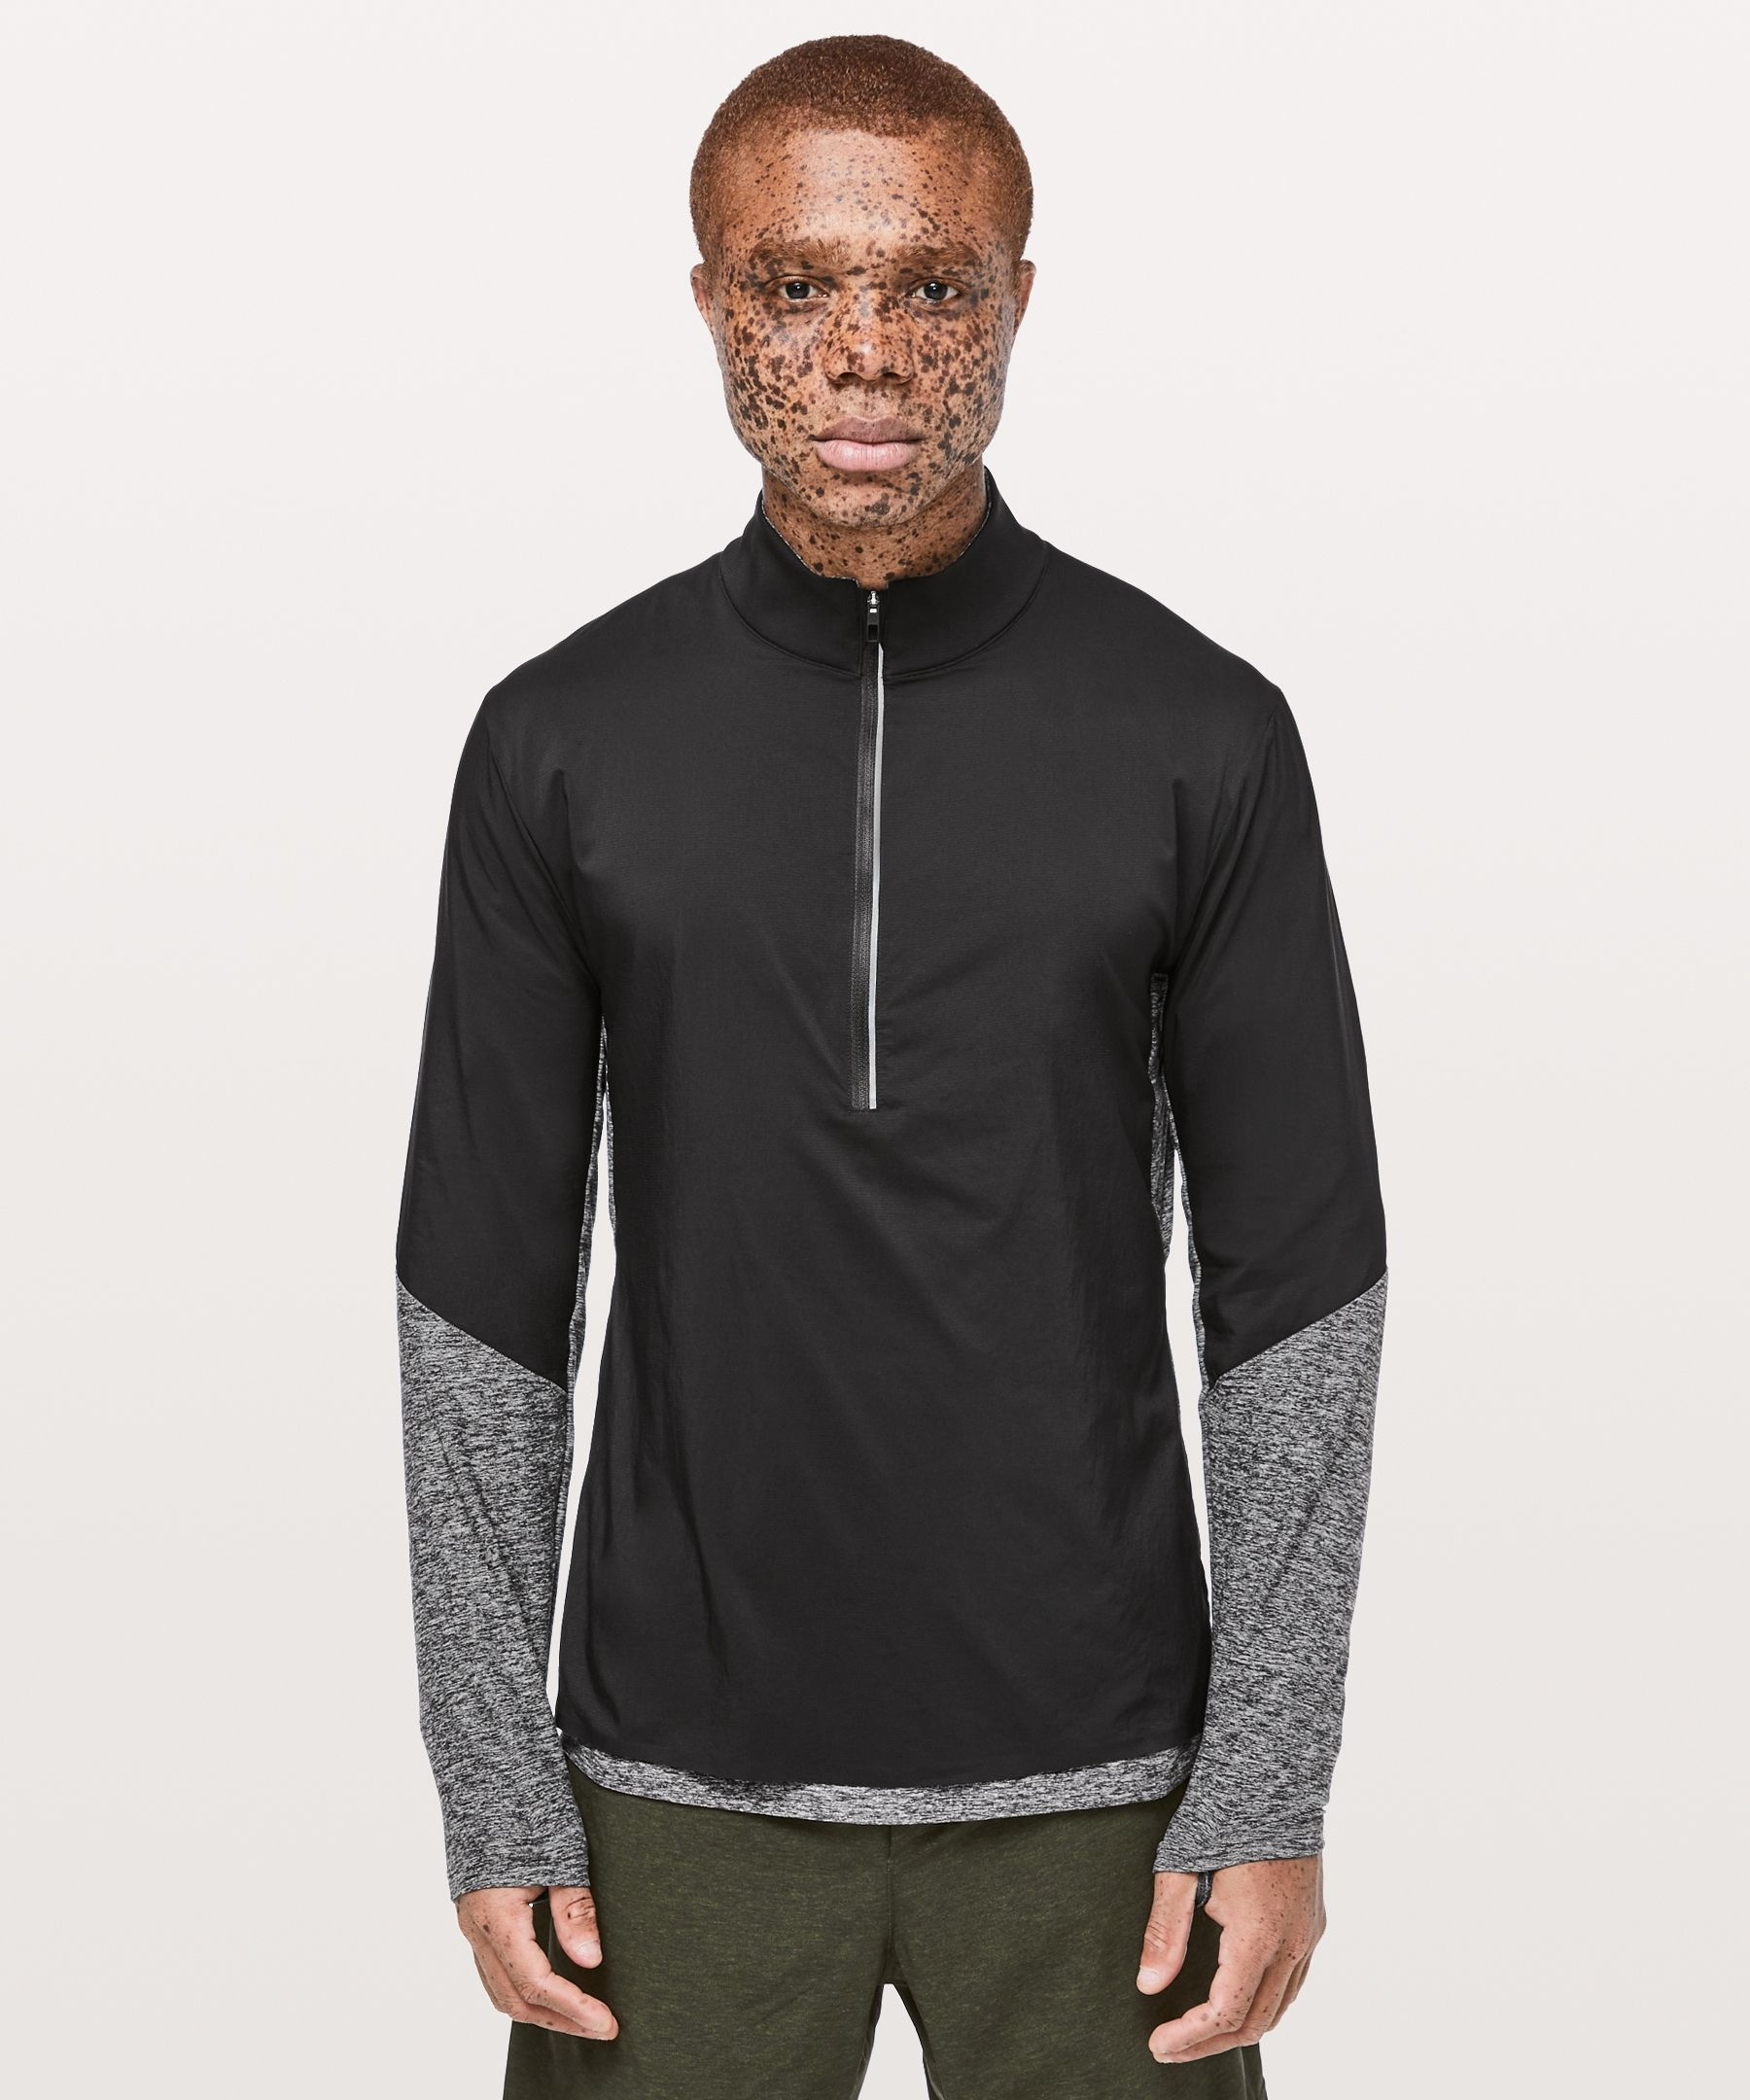 Surge Warm Shield 1/2 Zip - Don't hide from bad weather